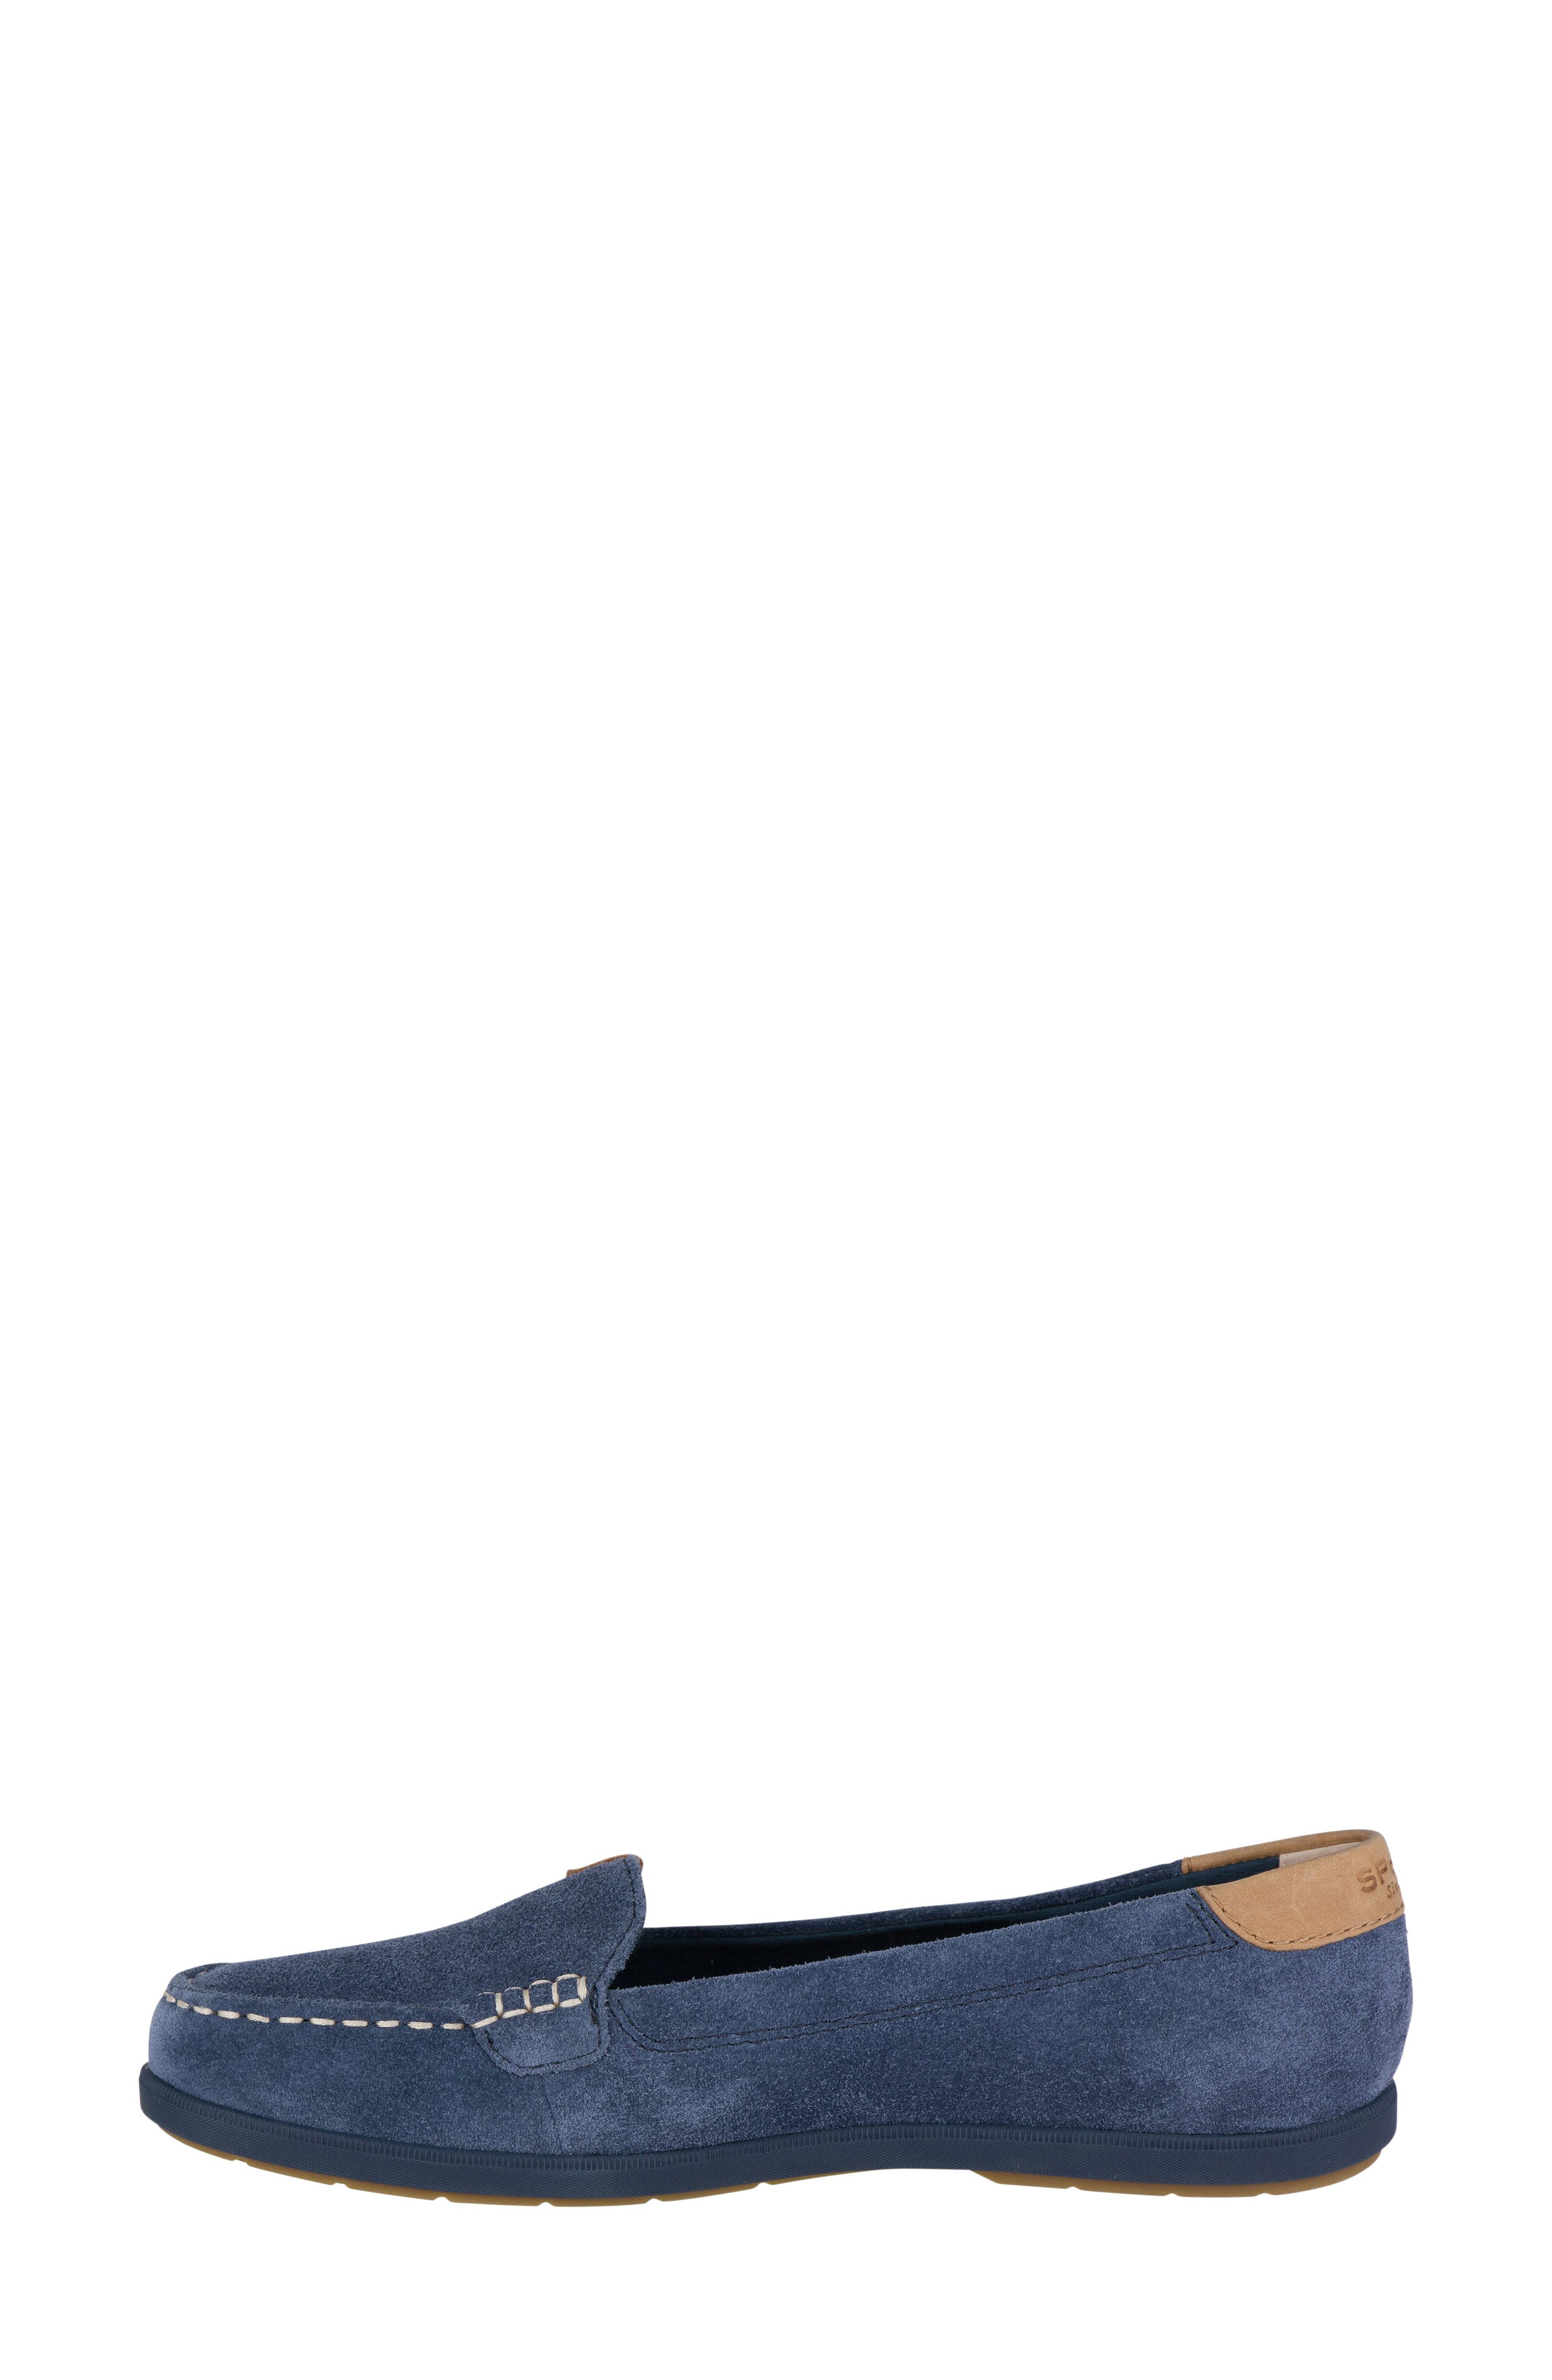 Coil Mia Loafer,                             Alternate thumbnail 9, color,